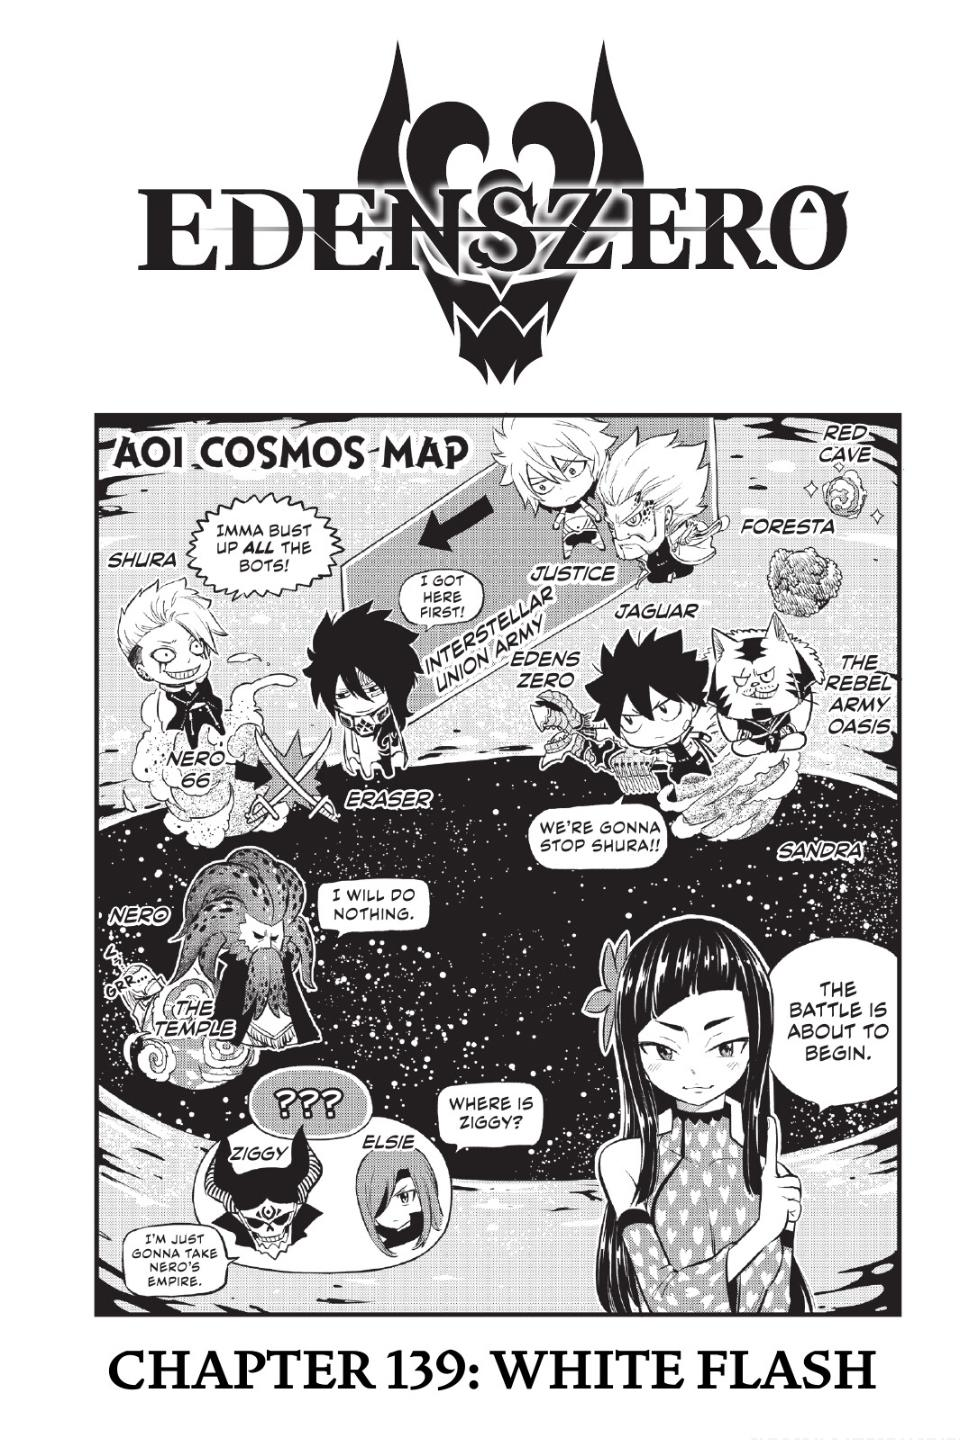 Edens Zero Chapter 139 Cover Page/Map